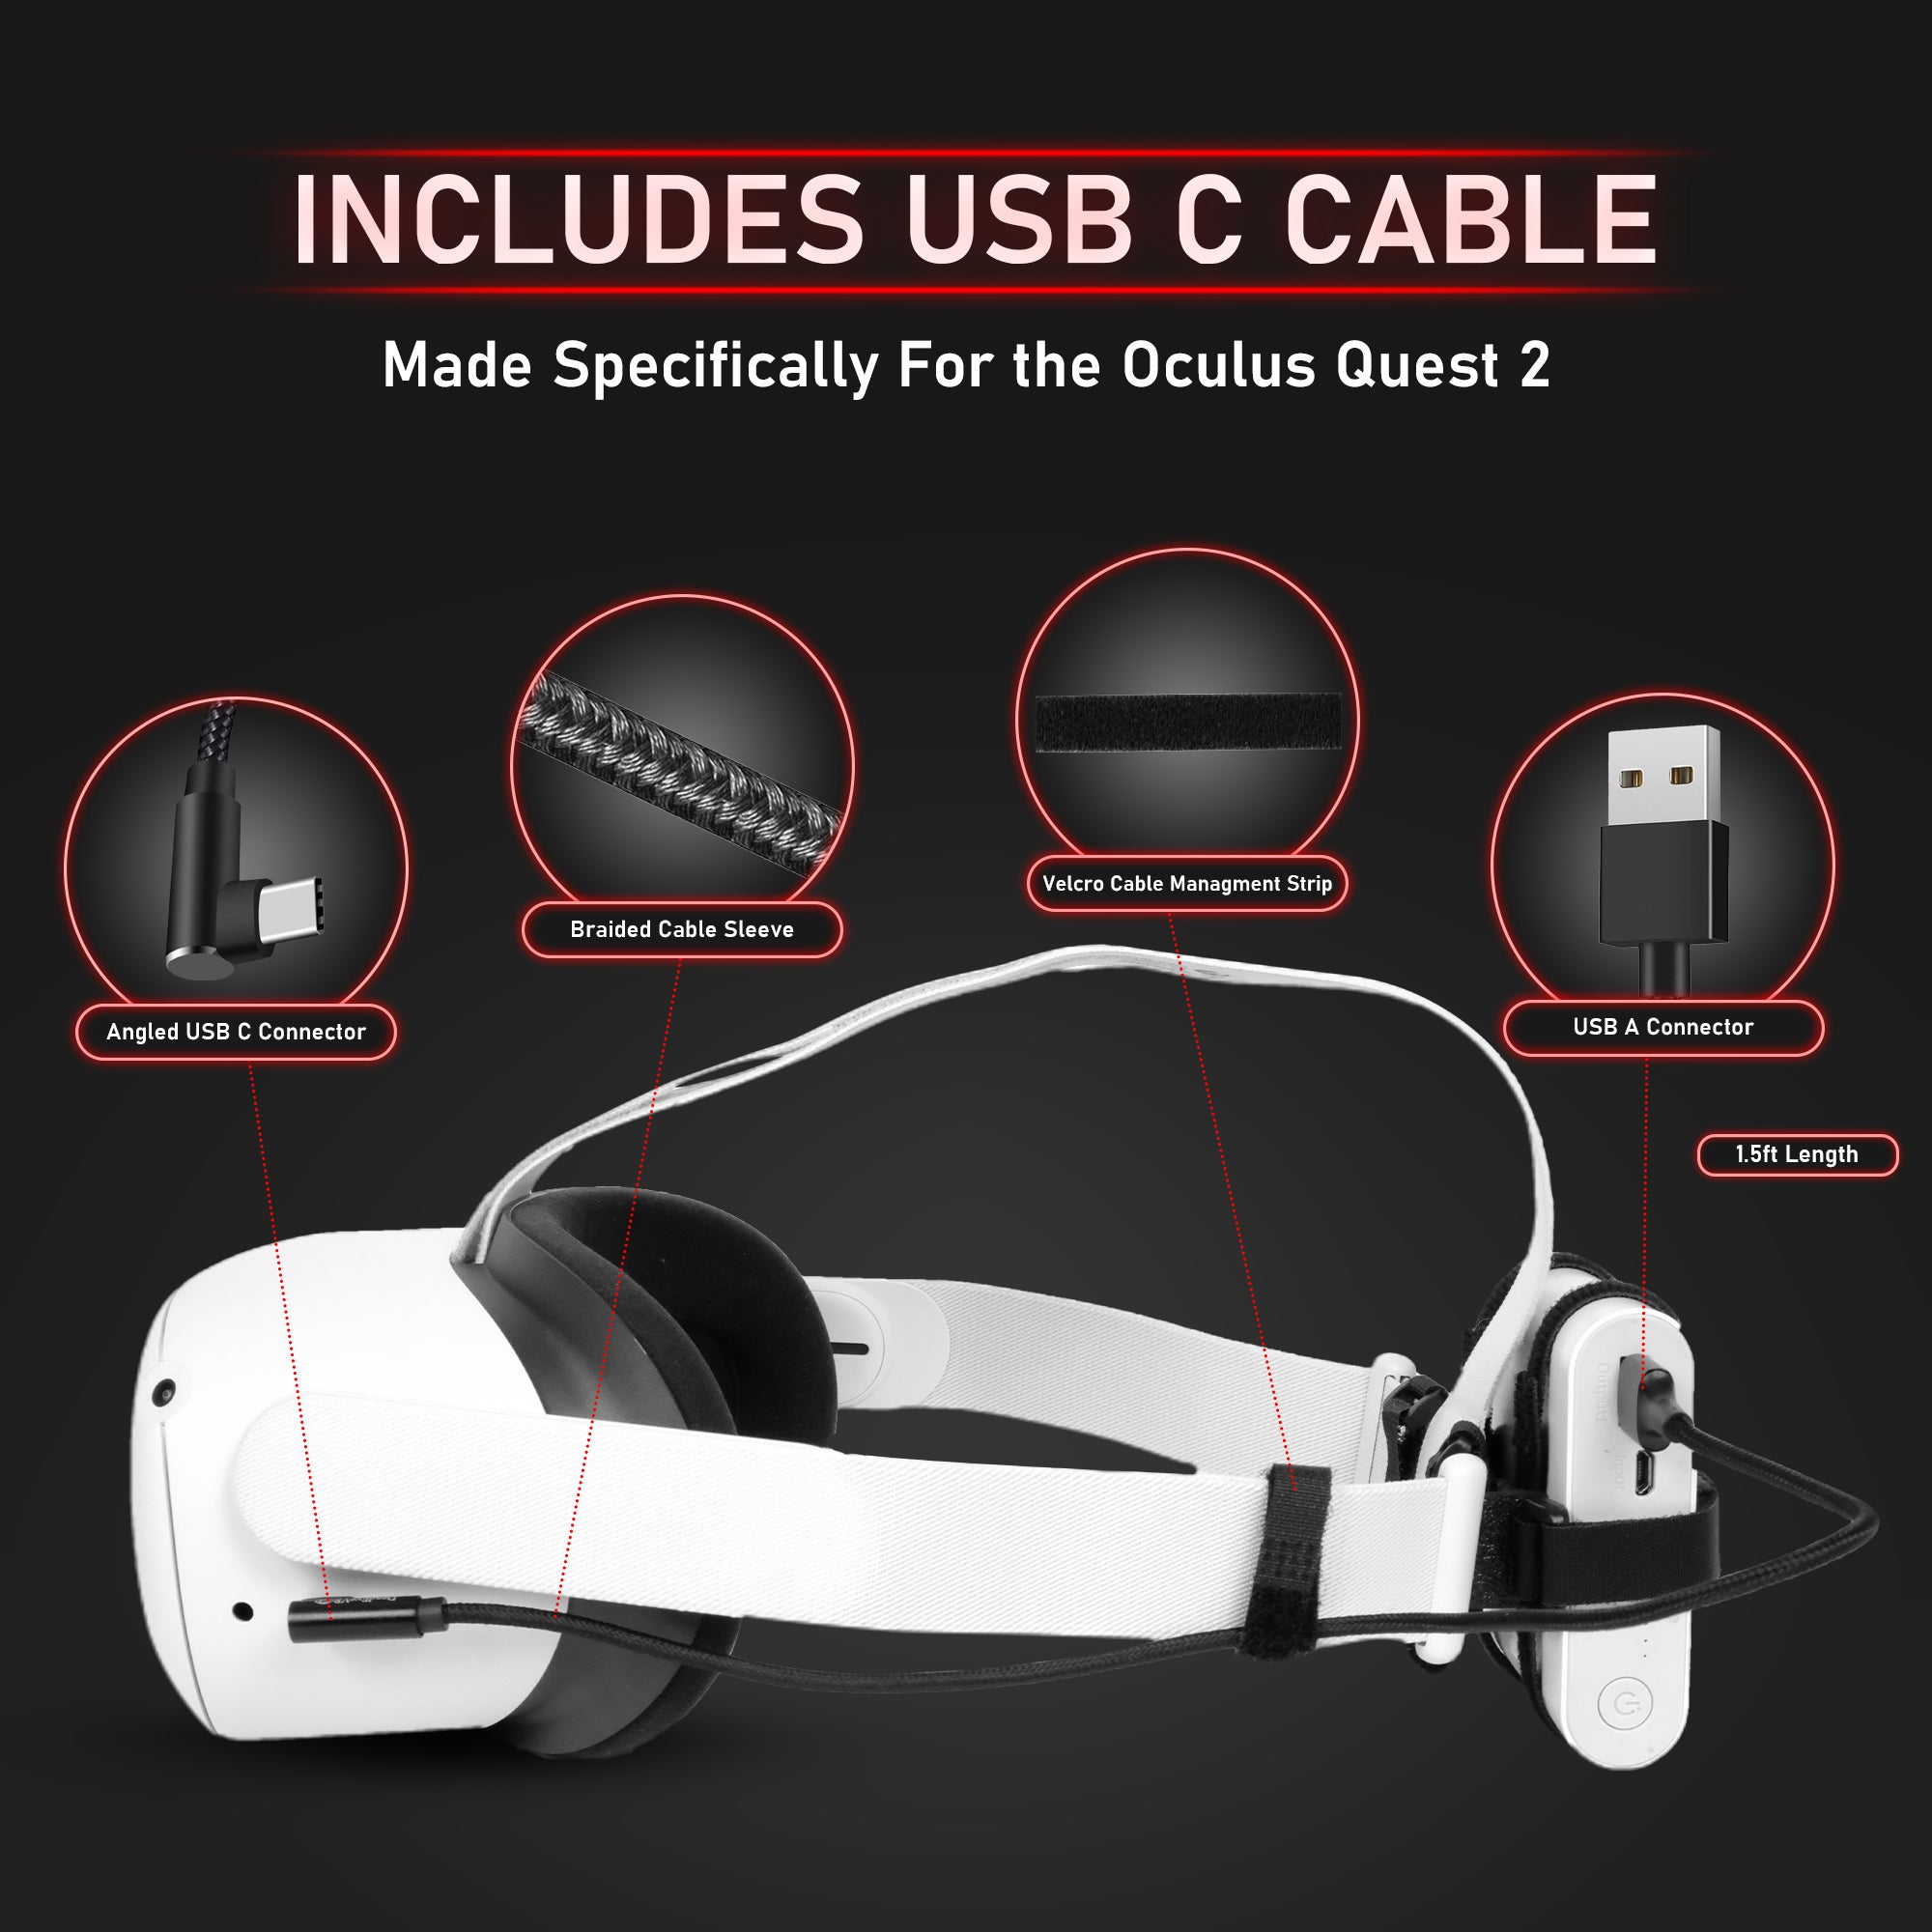 Universal Battery Mount Kit with USB C Cable - Battery Holders That Fit Any USB Power Bank For the Oculus Quest